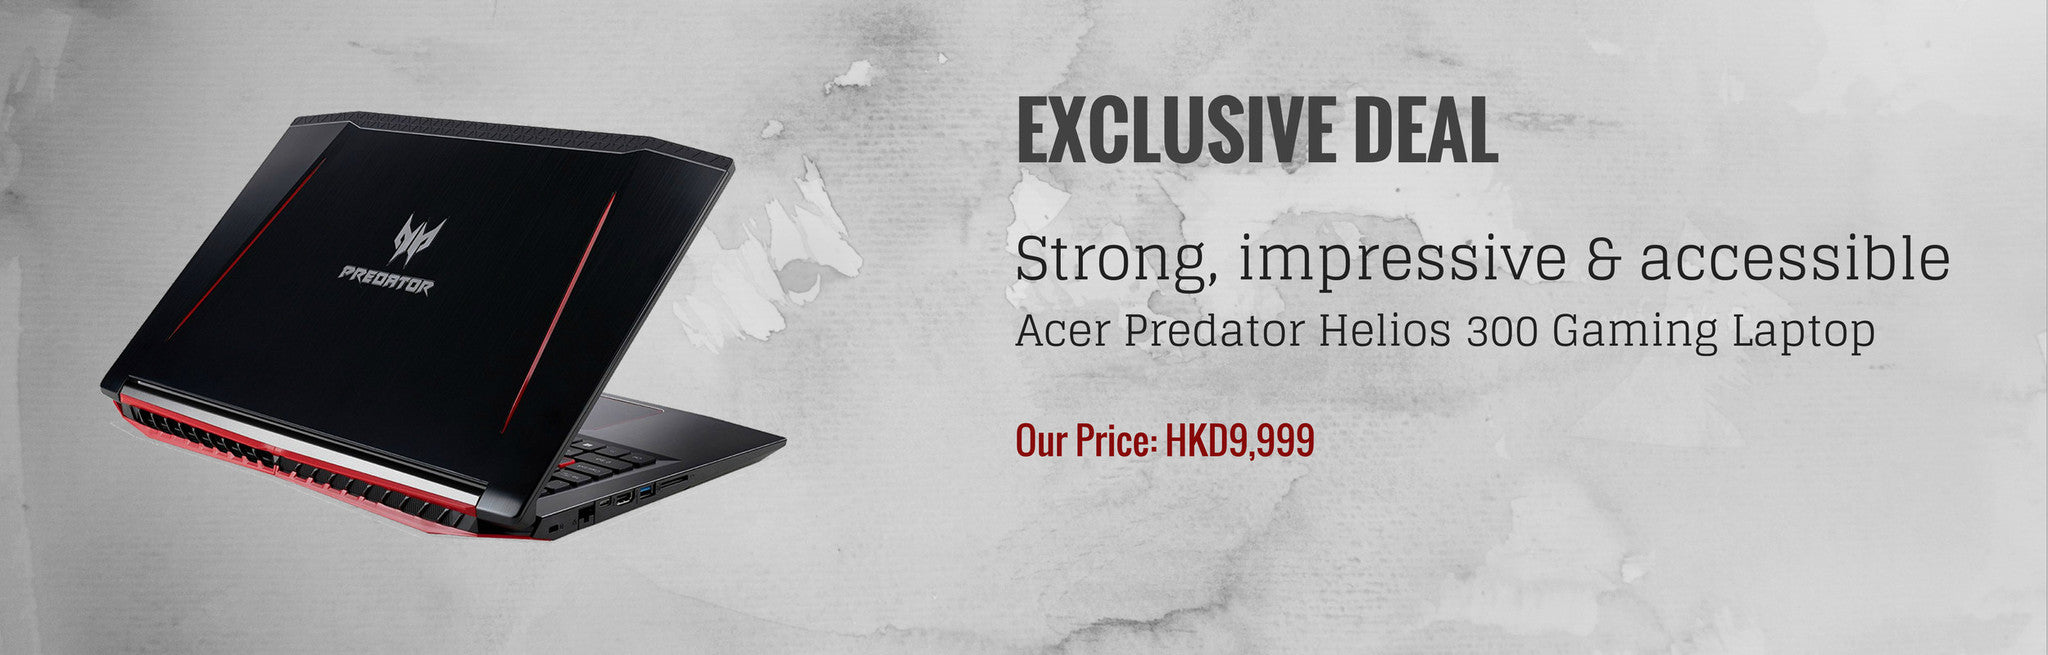 Deal N Ship HK slideshow-Acer Predator Helios 300 Gaming Laptop